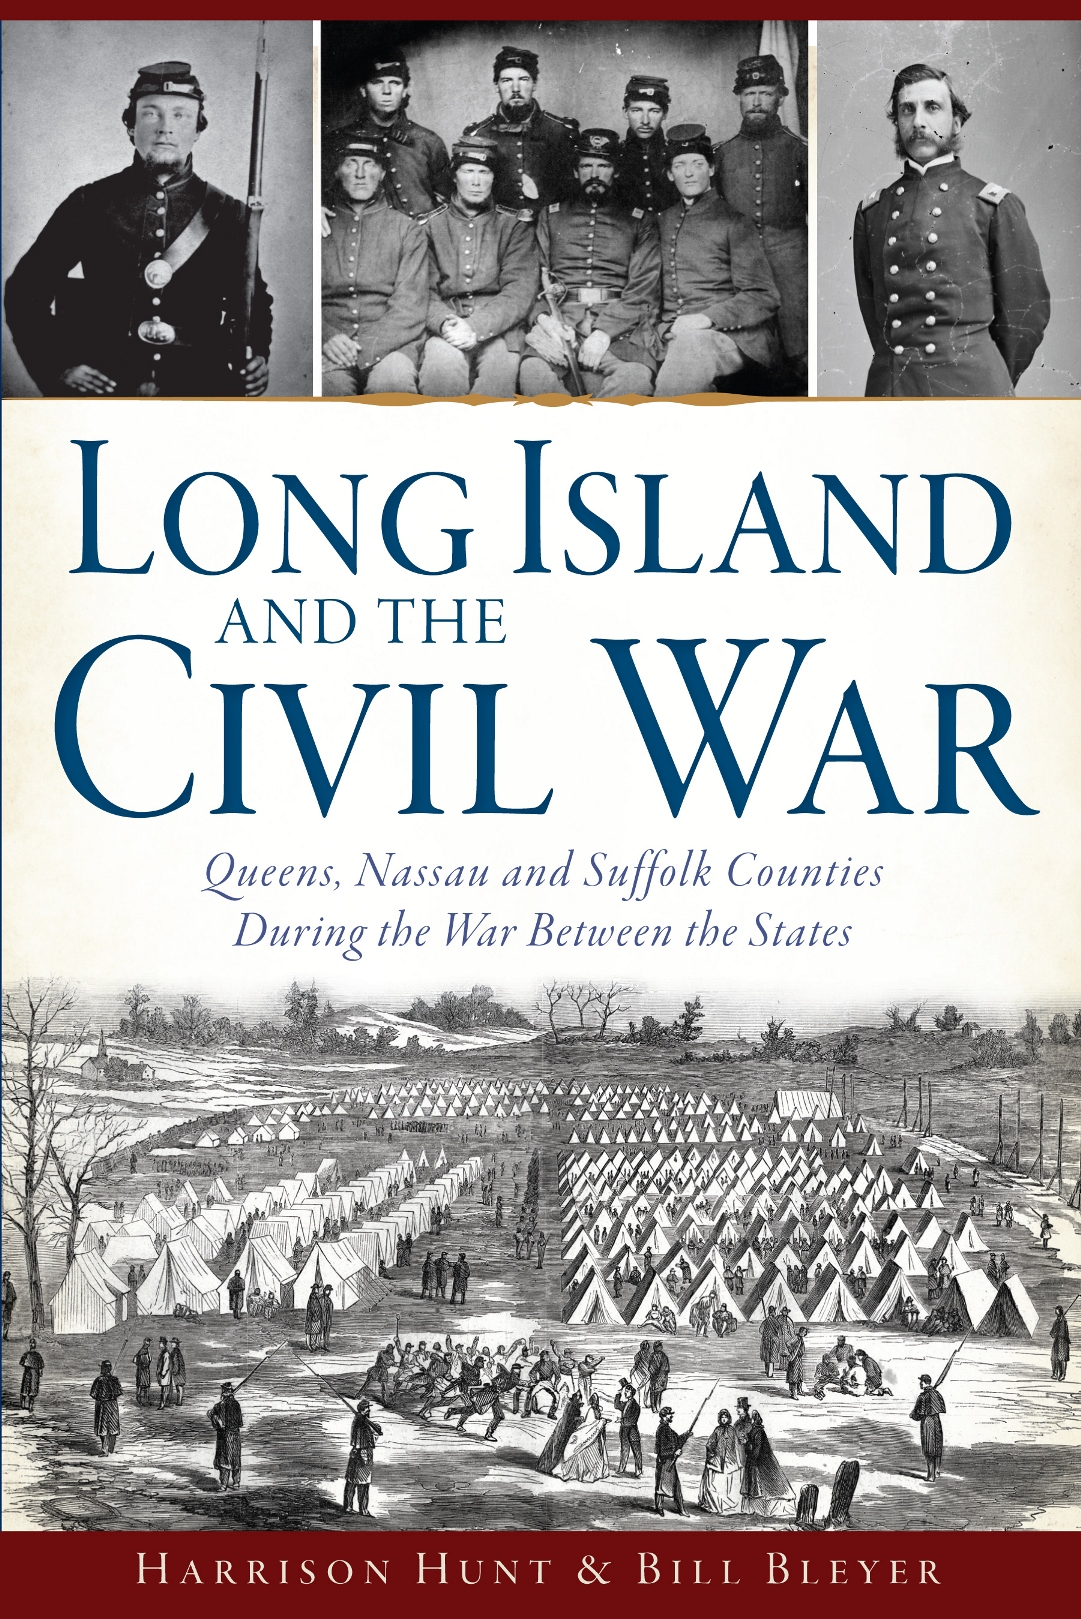 Long Island and the Civil War, Hammond review